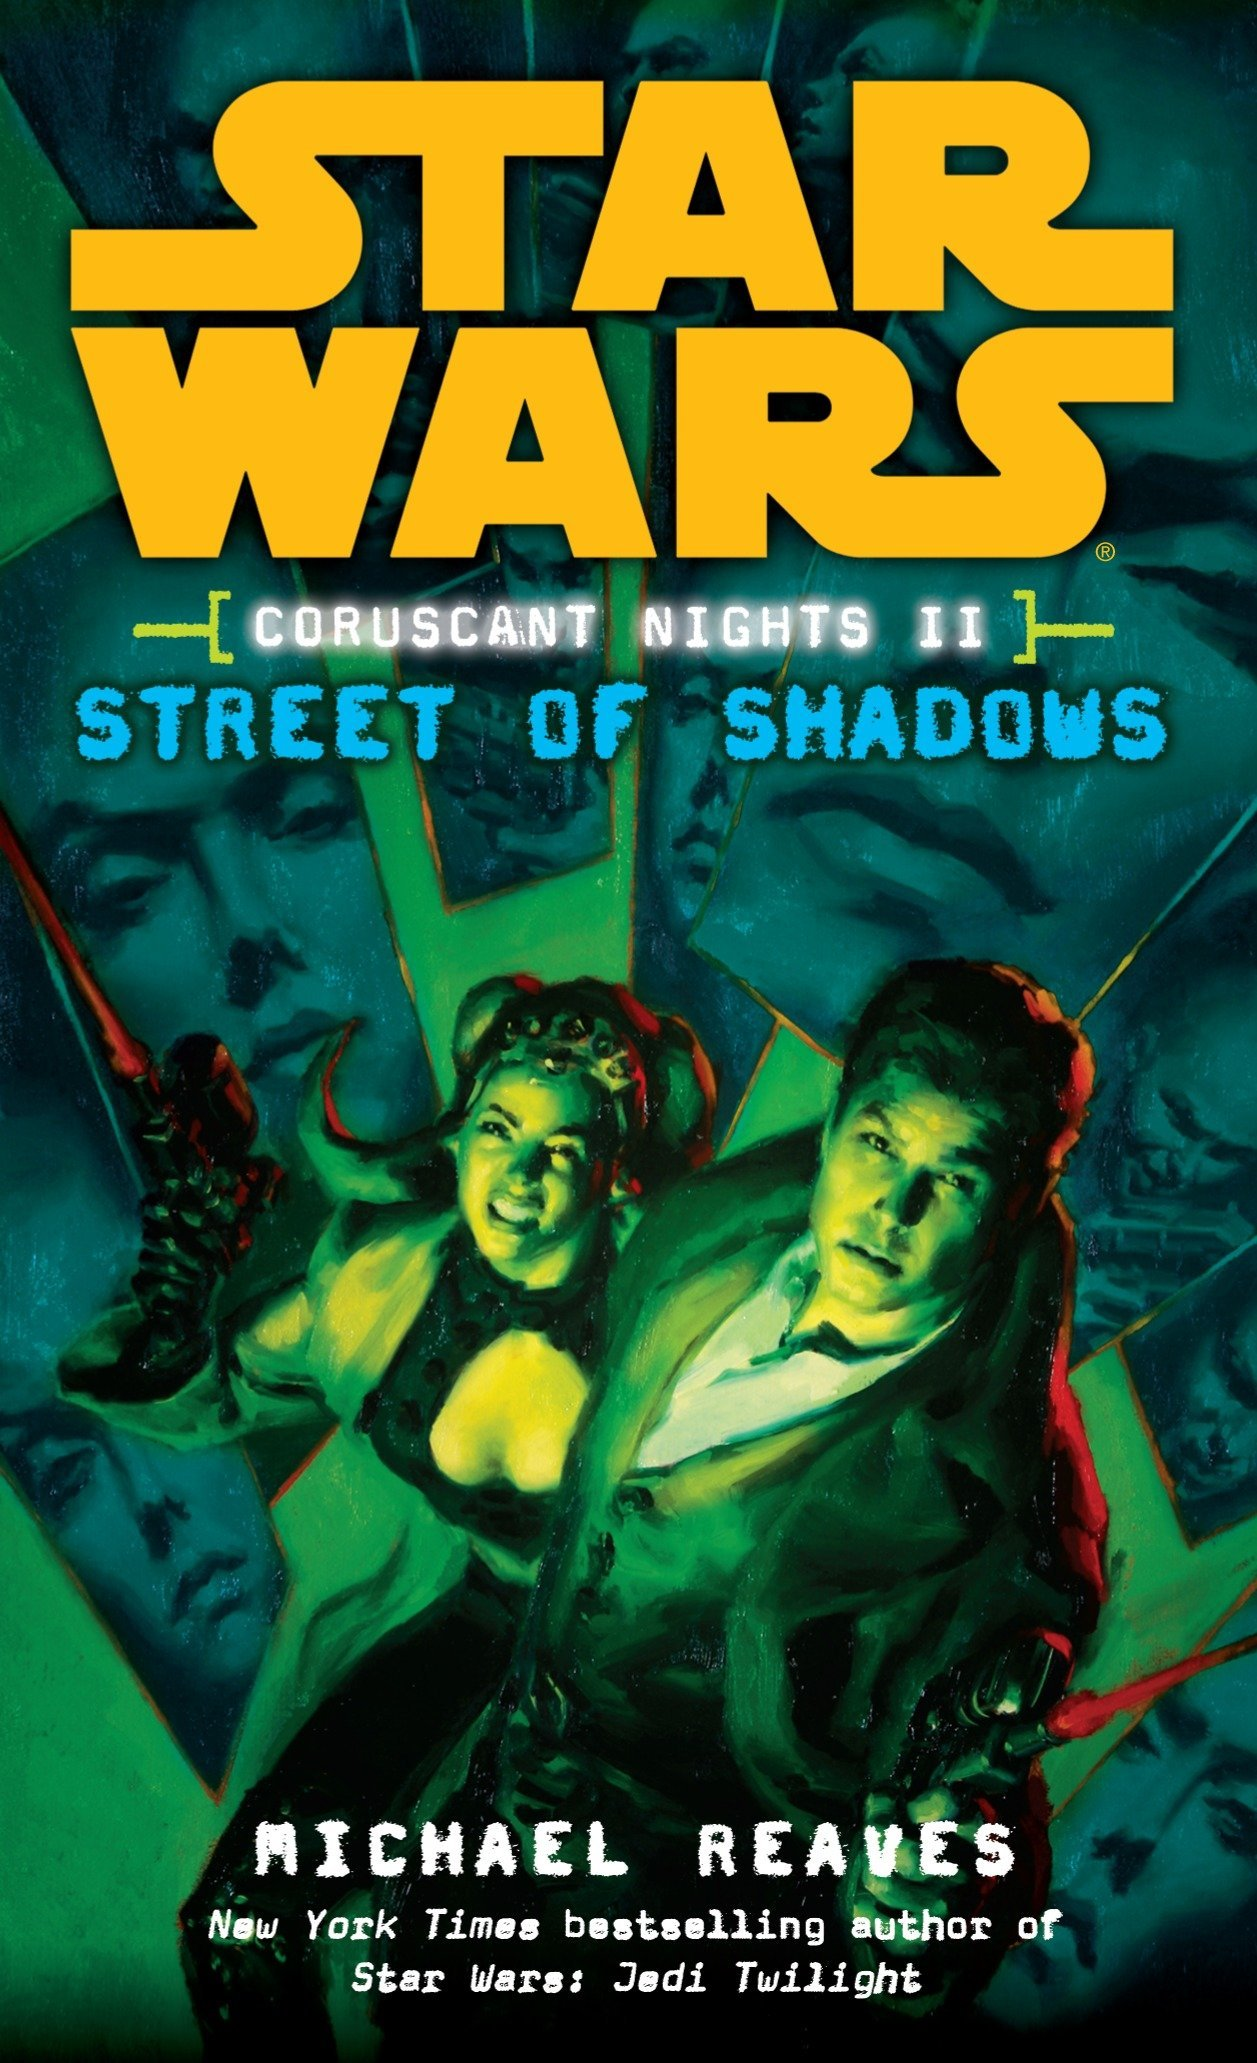 Star Wars Coruscant Nights: Street of Shadows